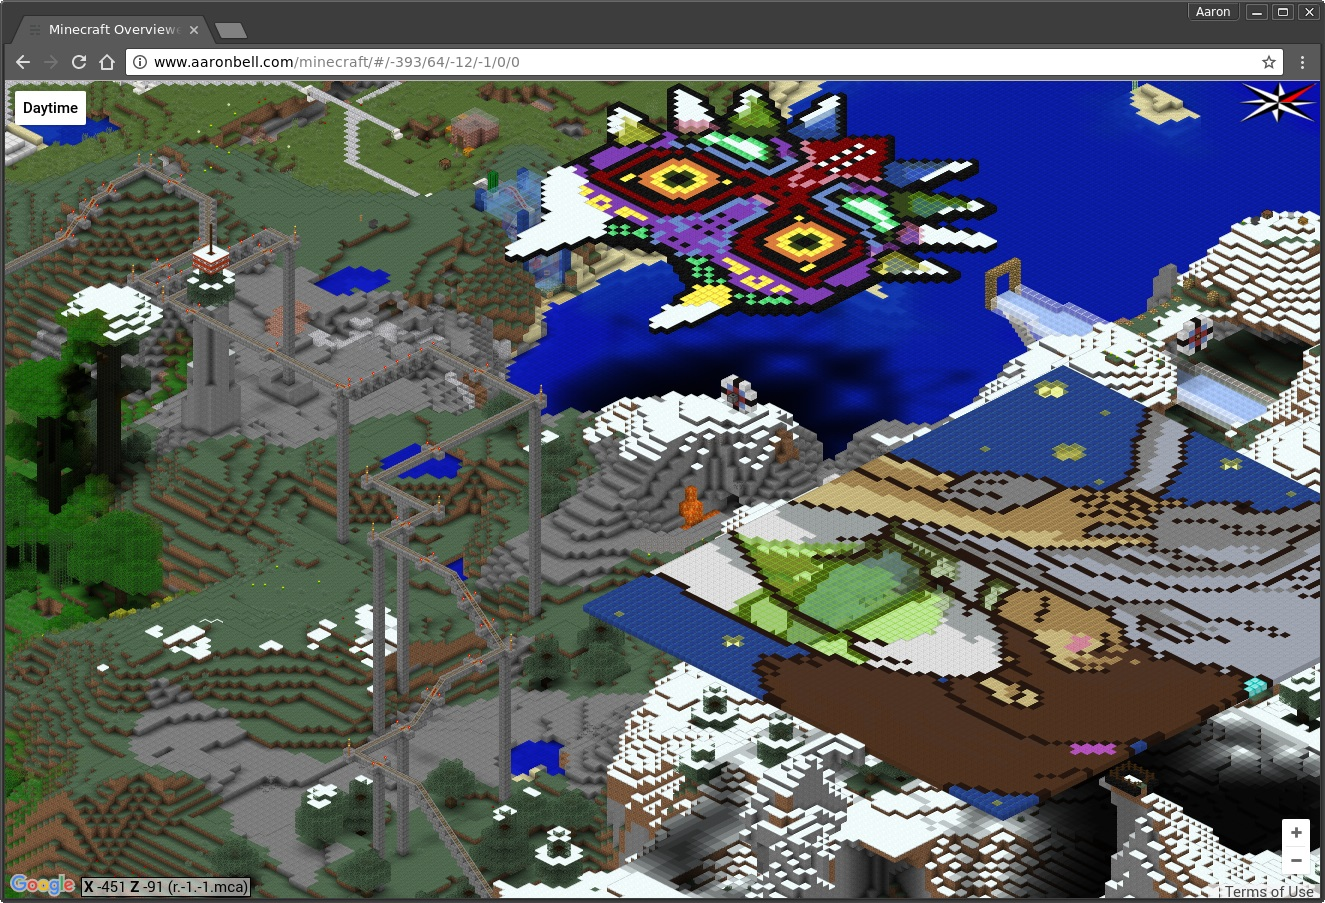 How to create Overviewer maps from Minecraft Realms